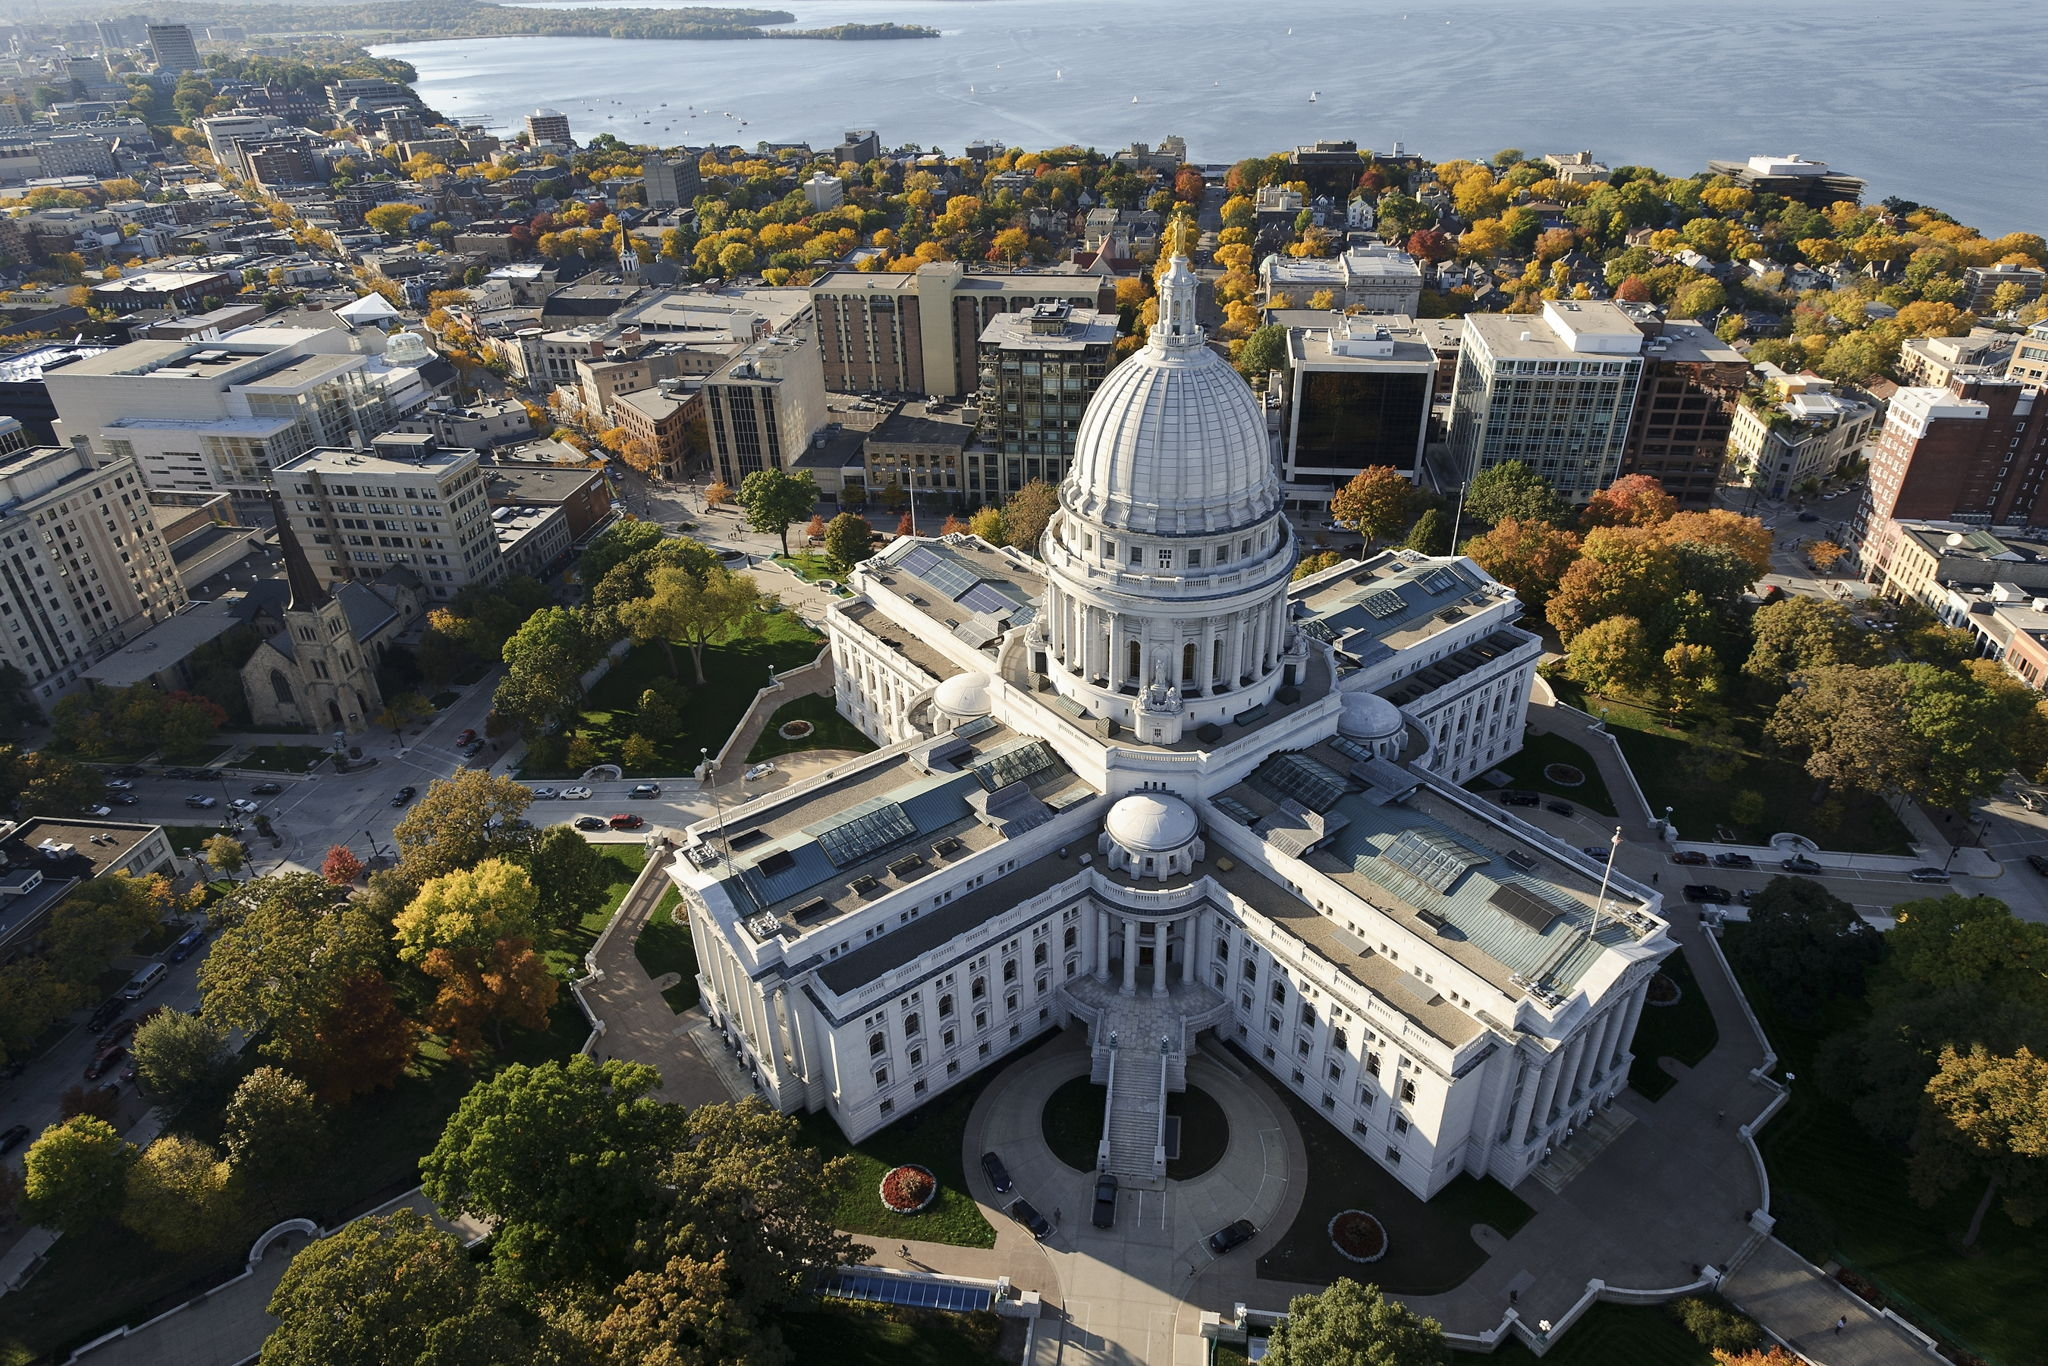 downtown-madison-wi-arts-entertainment-and-politics-1.jpg